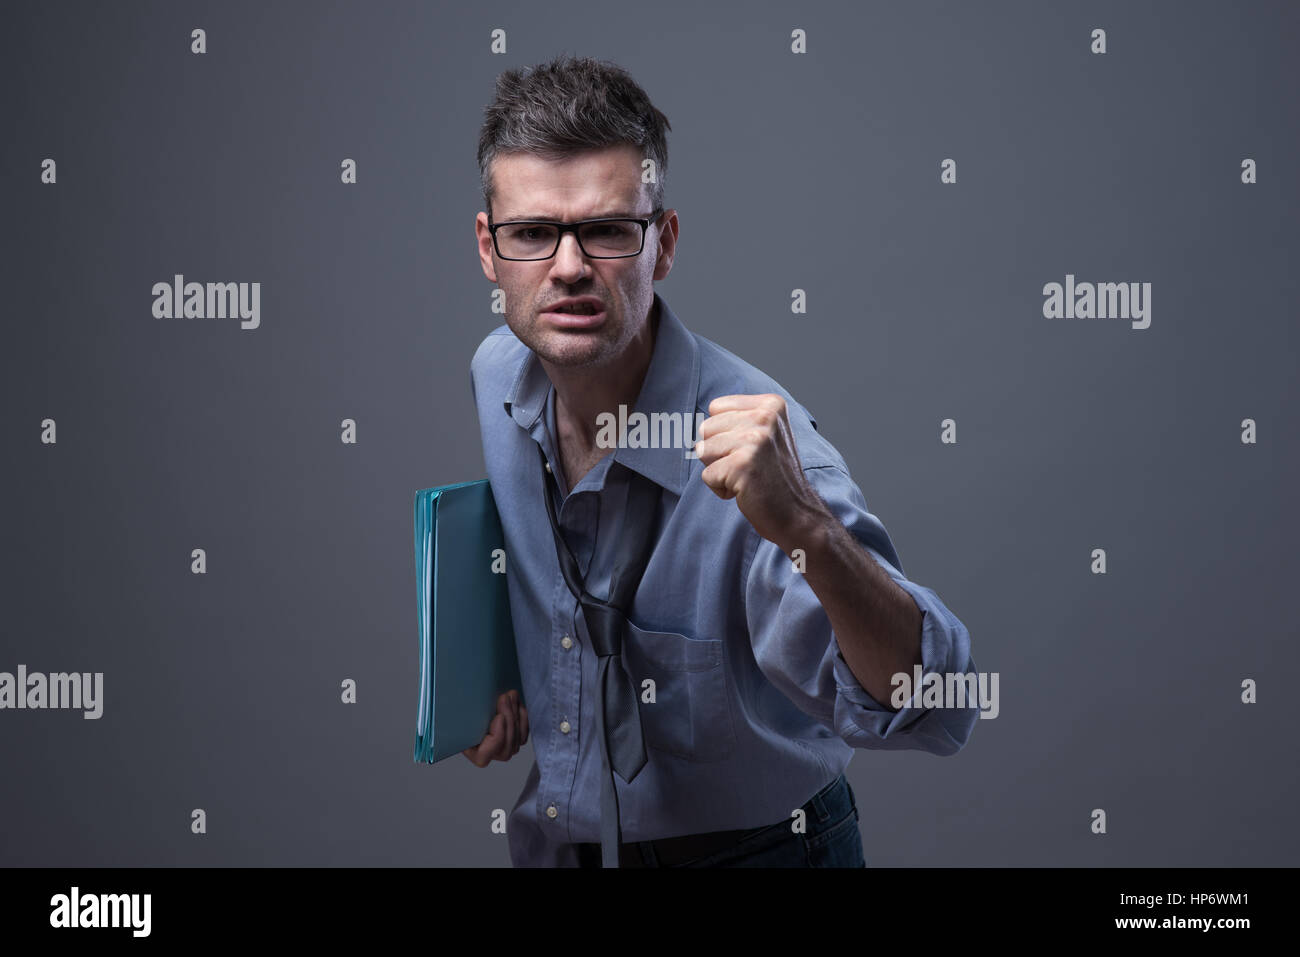 Angry untidy businessman with files snarling with fist raised - Stock Image